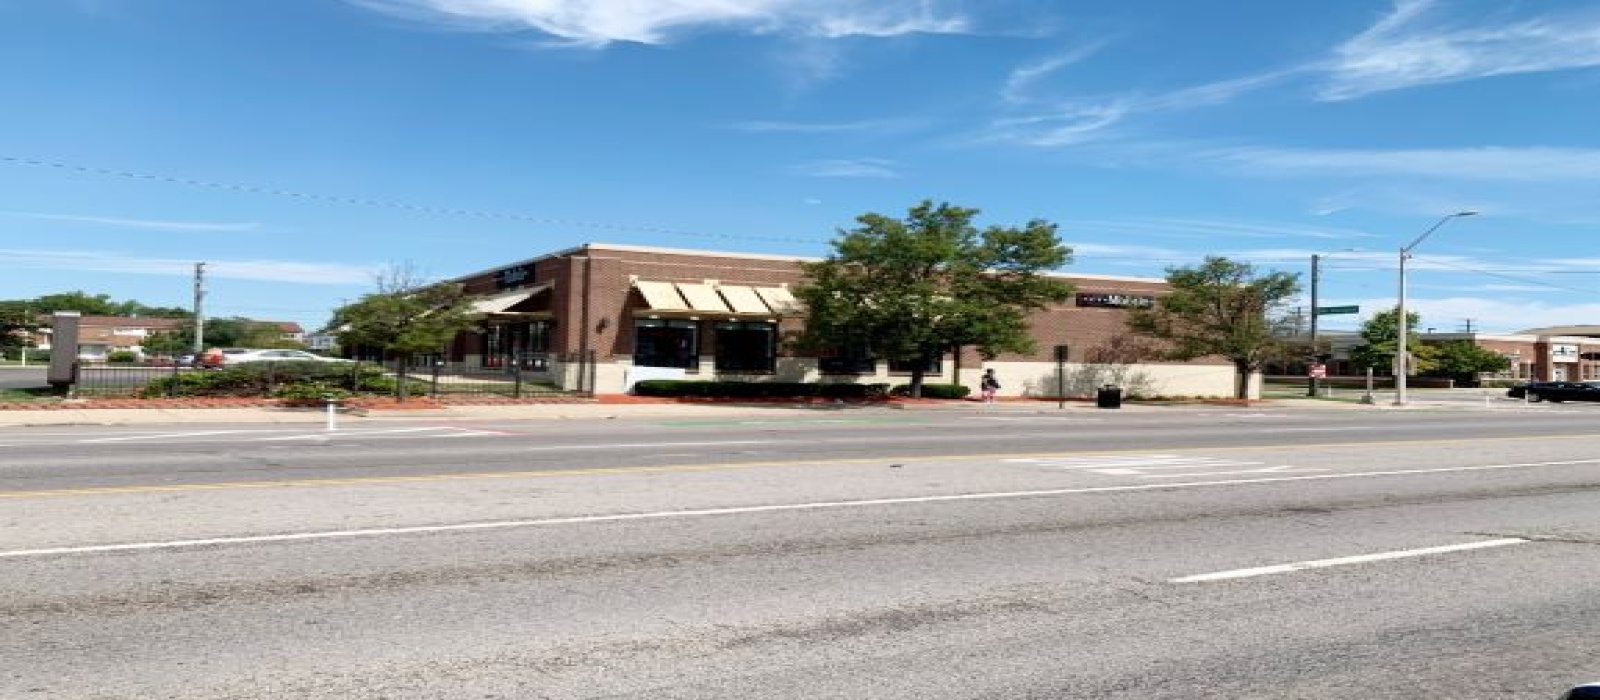 3151 East Jefferson, Highland Park, Michigan 48203, ,Retail,For Lease,3151 East Jefferson,1017